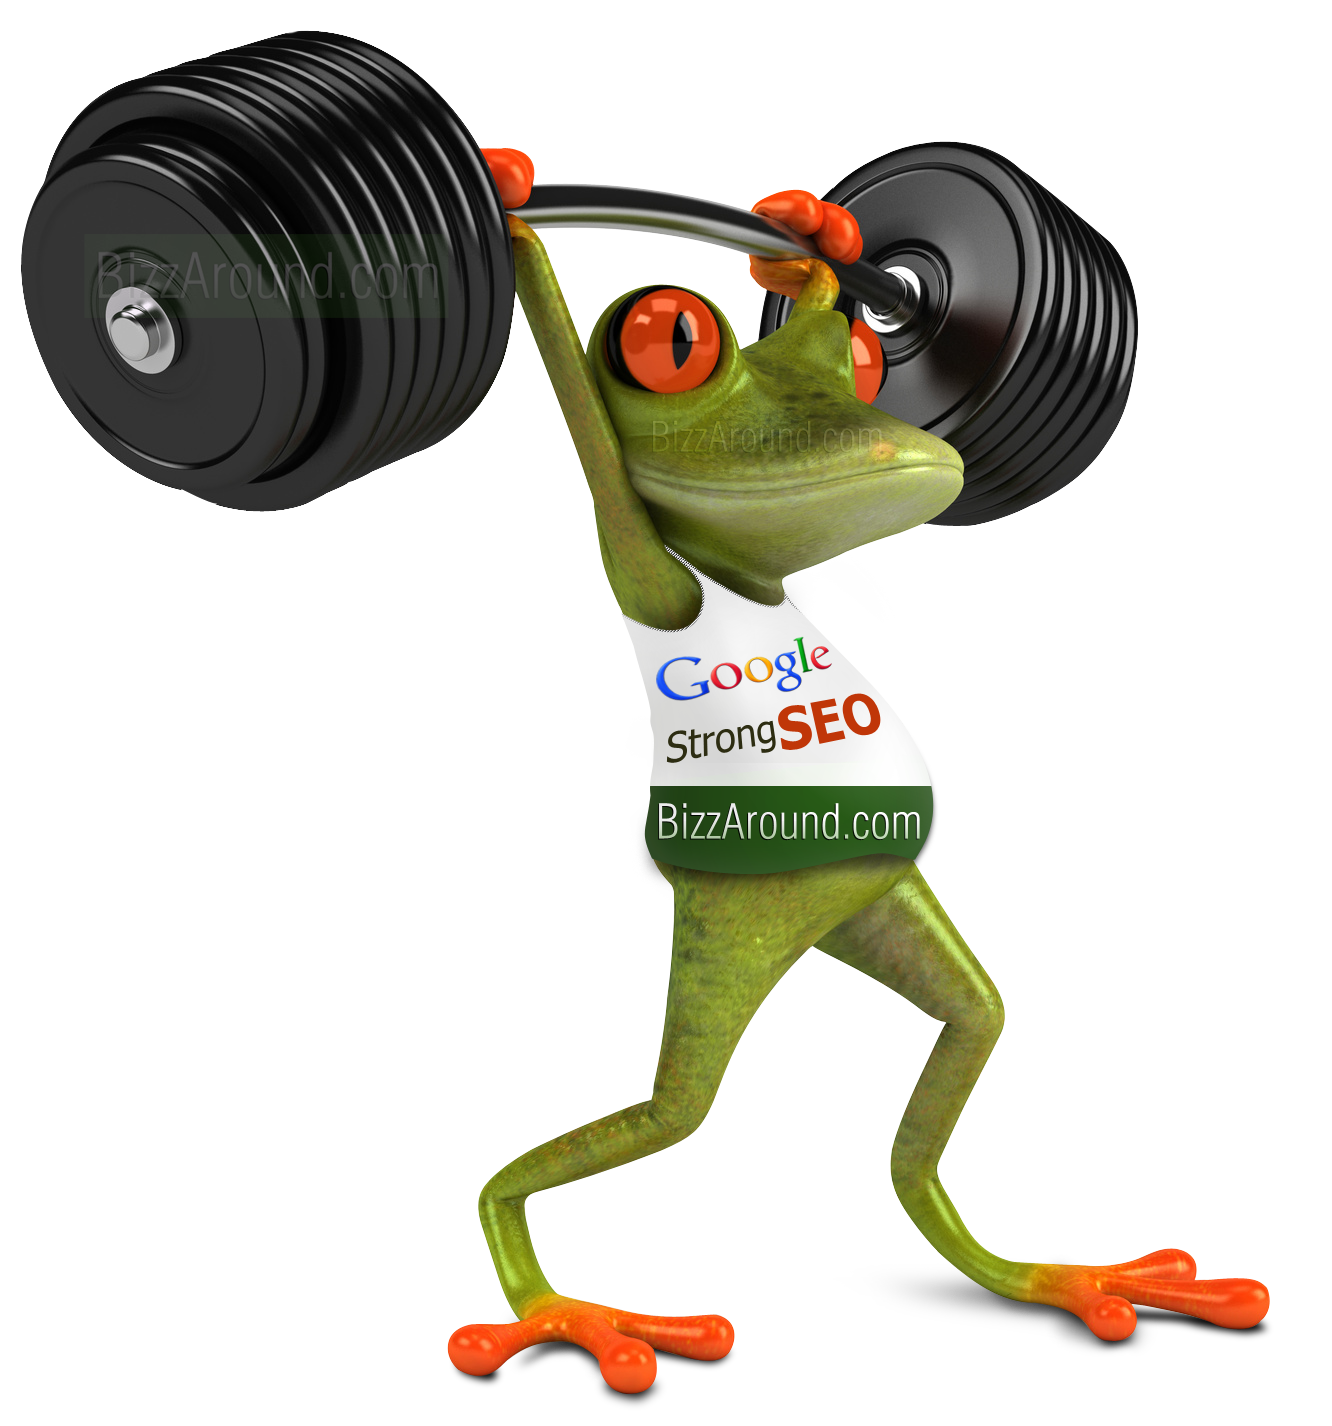 Promote business on google, Promote your business on google, promote my business on google.